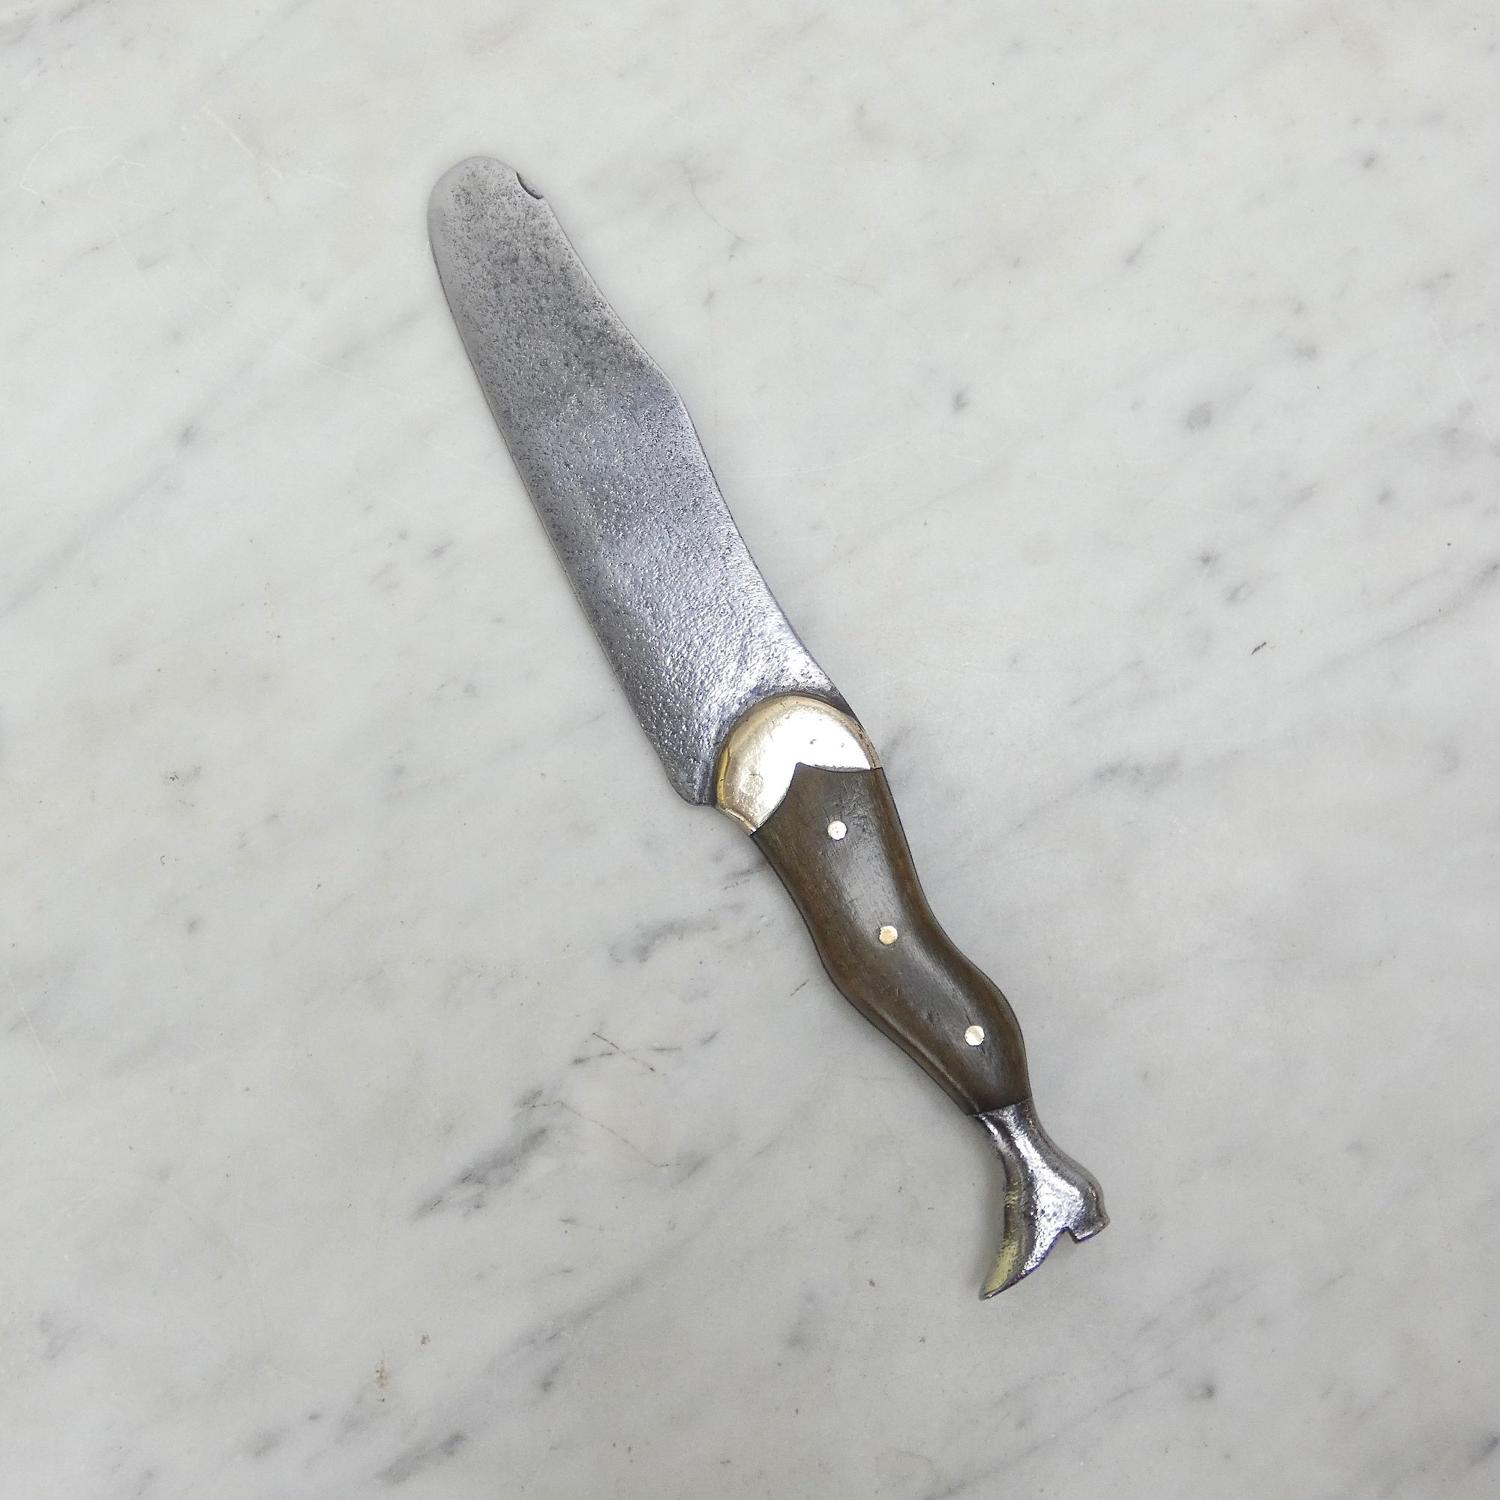 Leg shaped knife